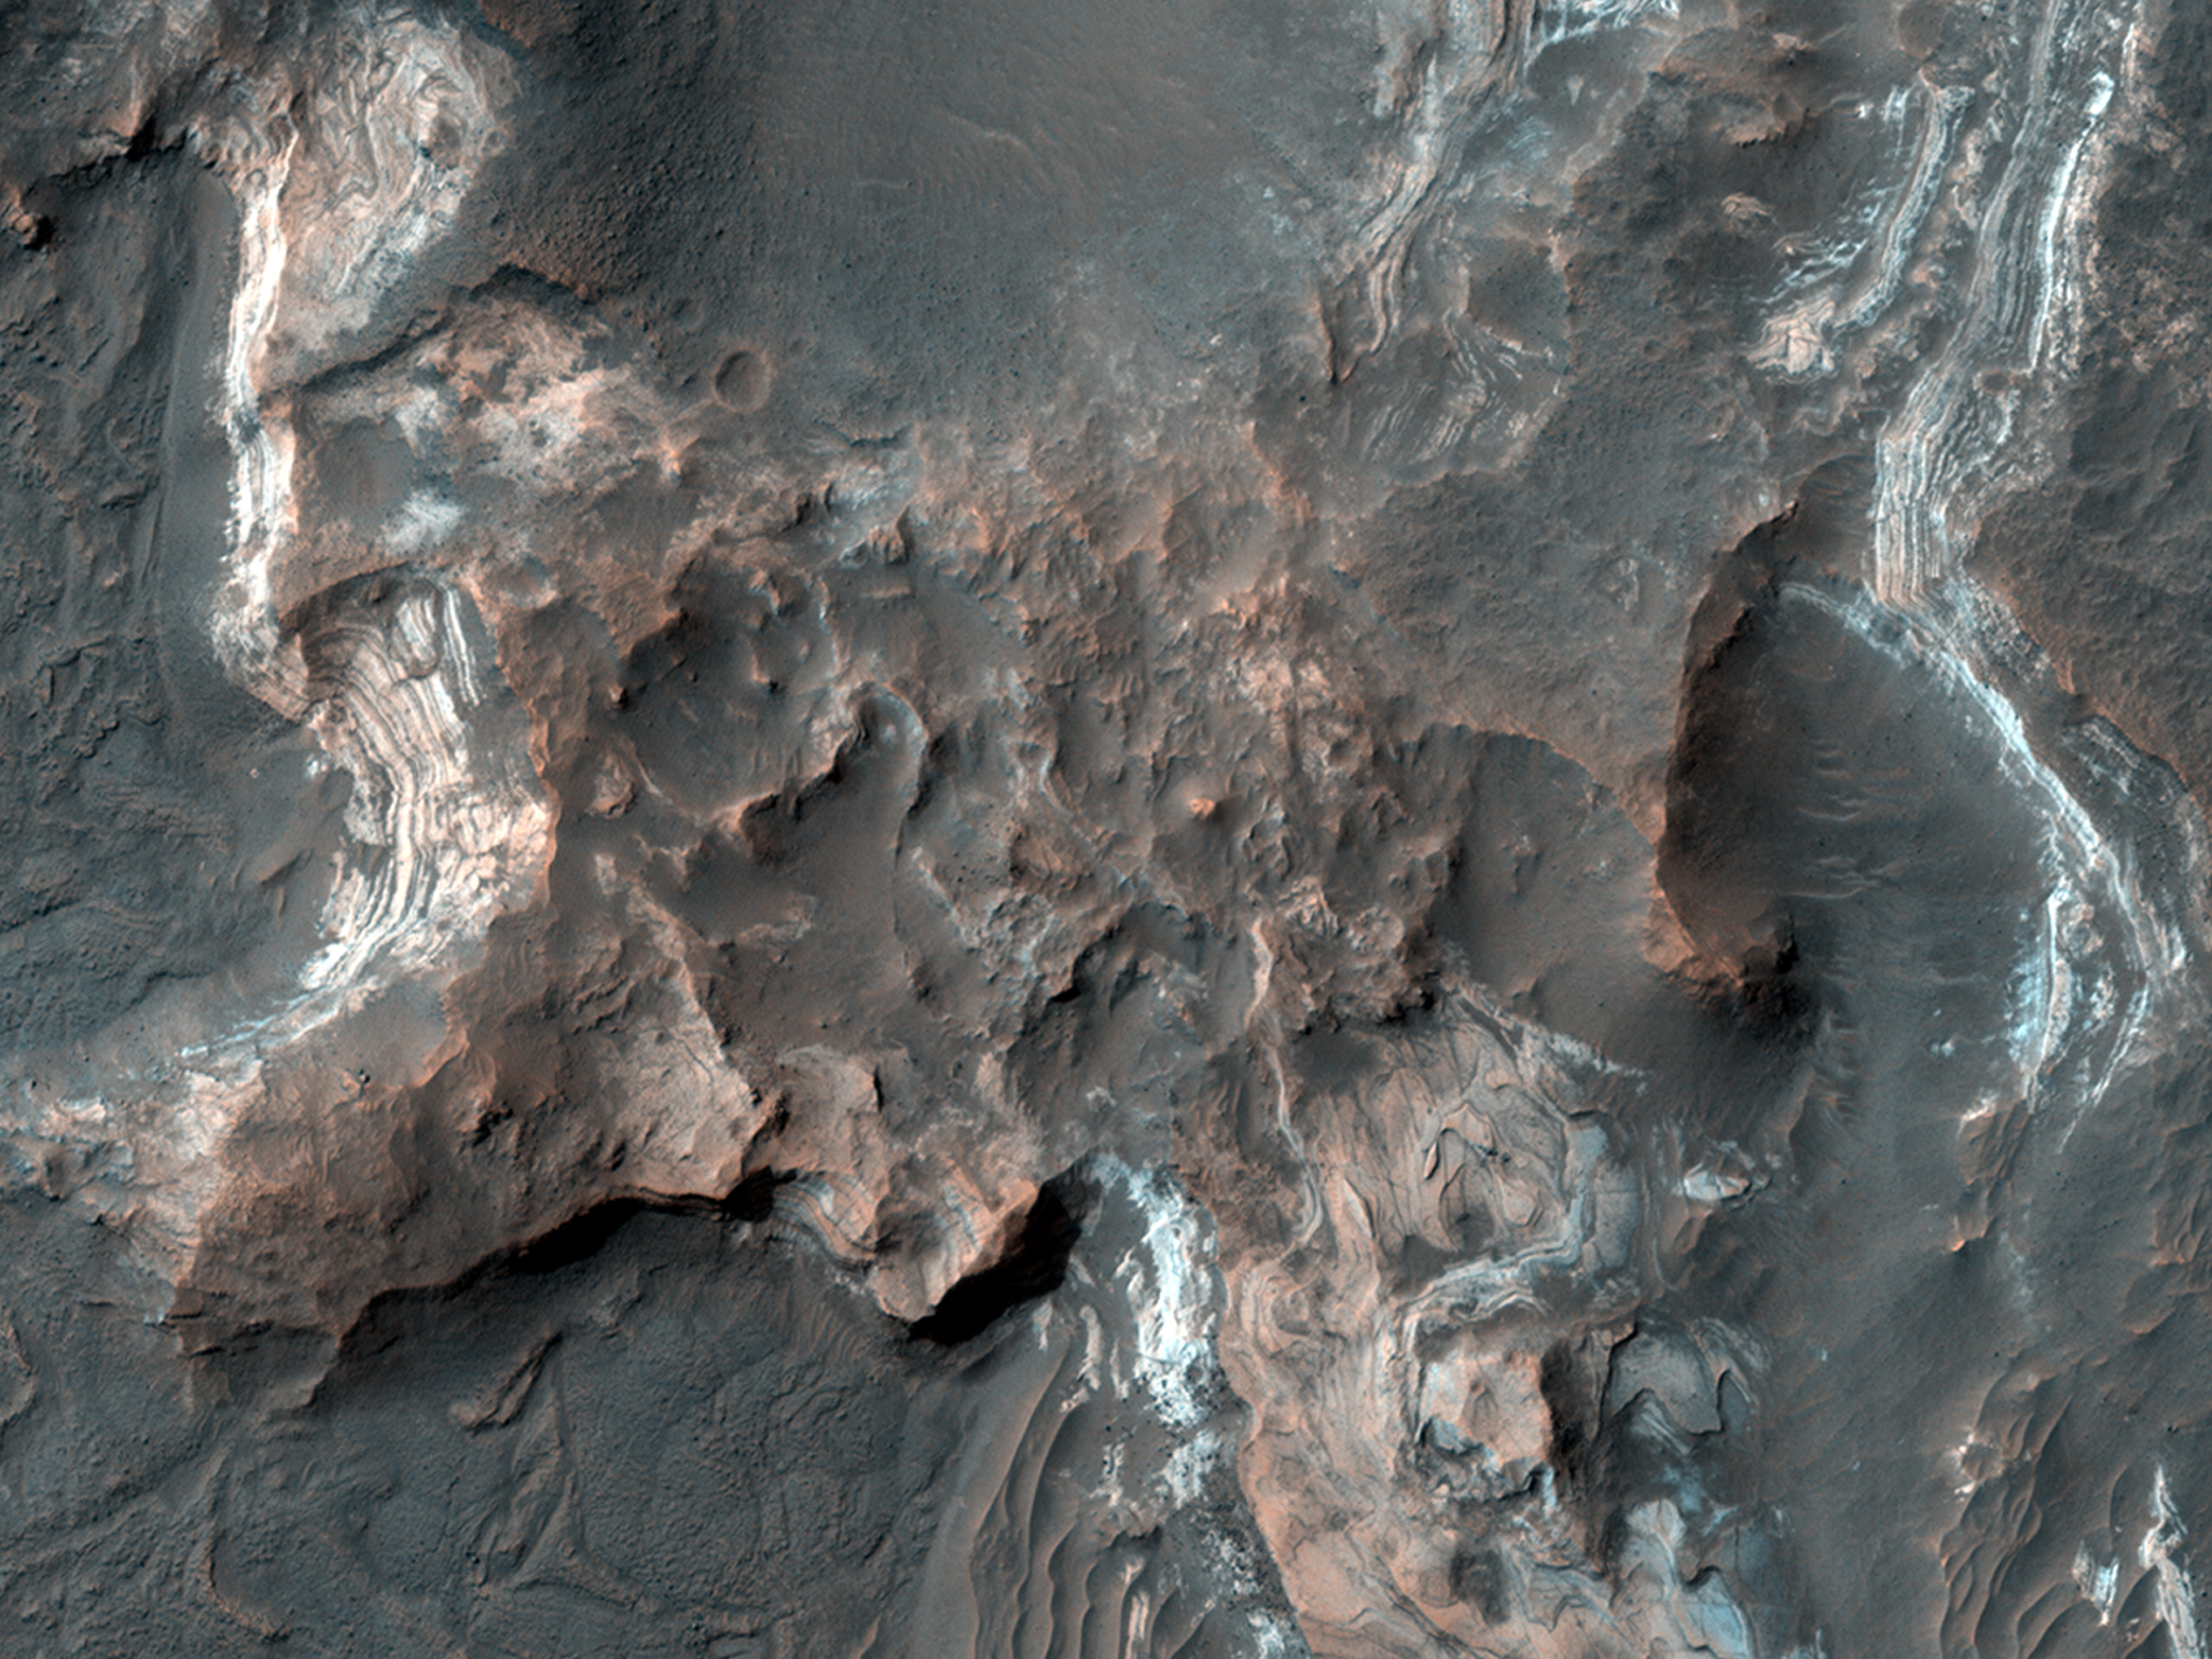 Layered Rocks in Orson Welles Crater